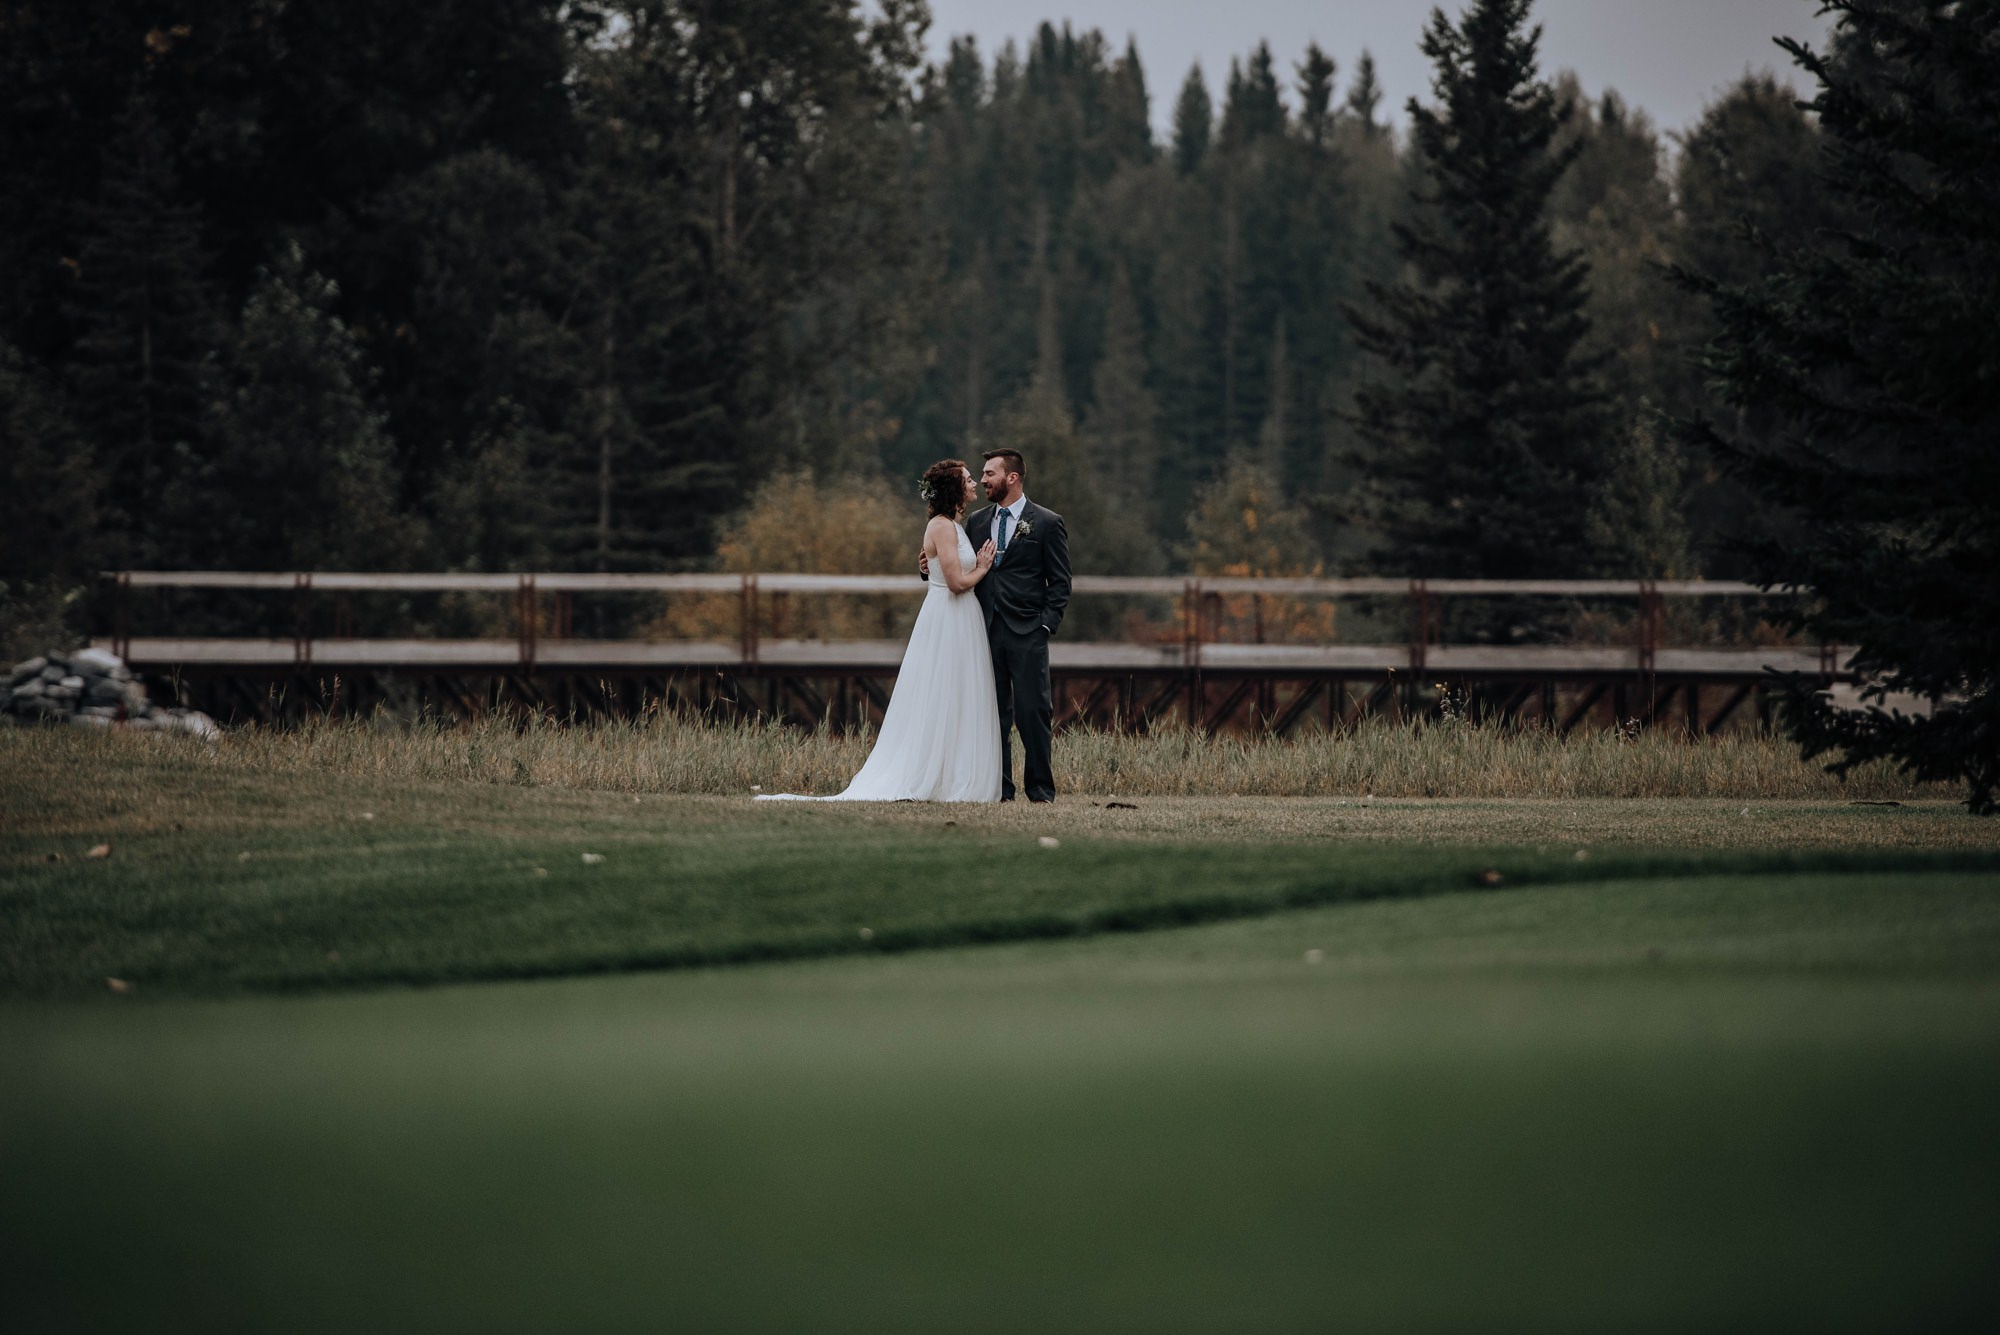 beautiful portraits of bride and groom on a golf course at Calgary golf club wedding in the fall time